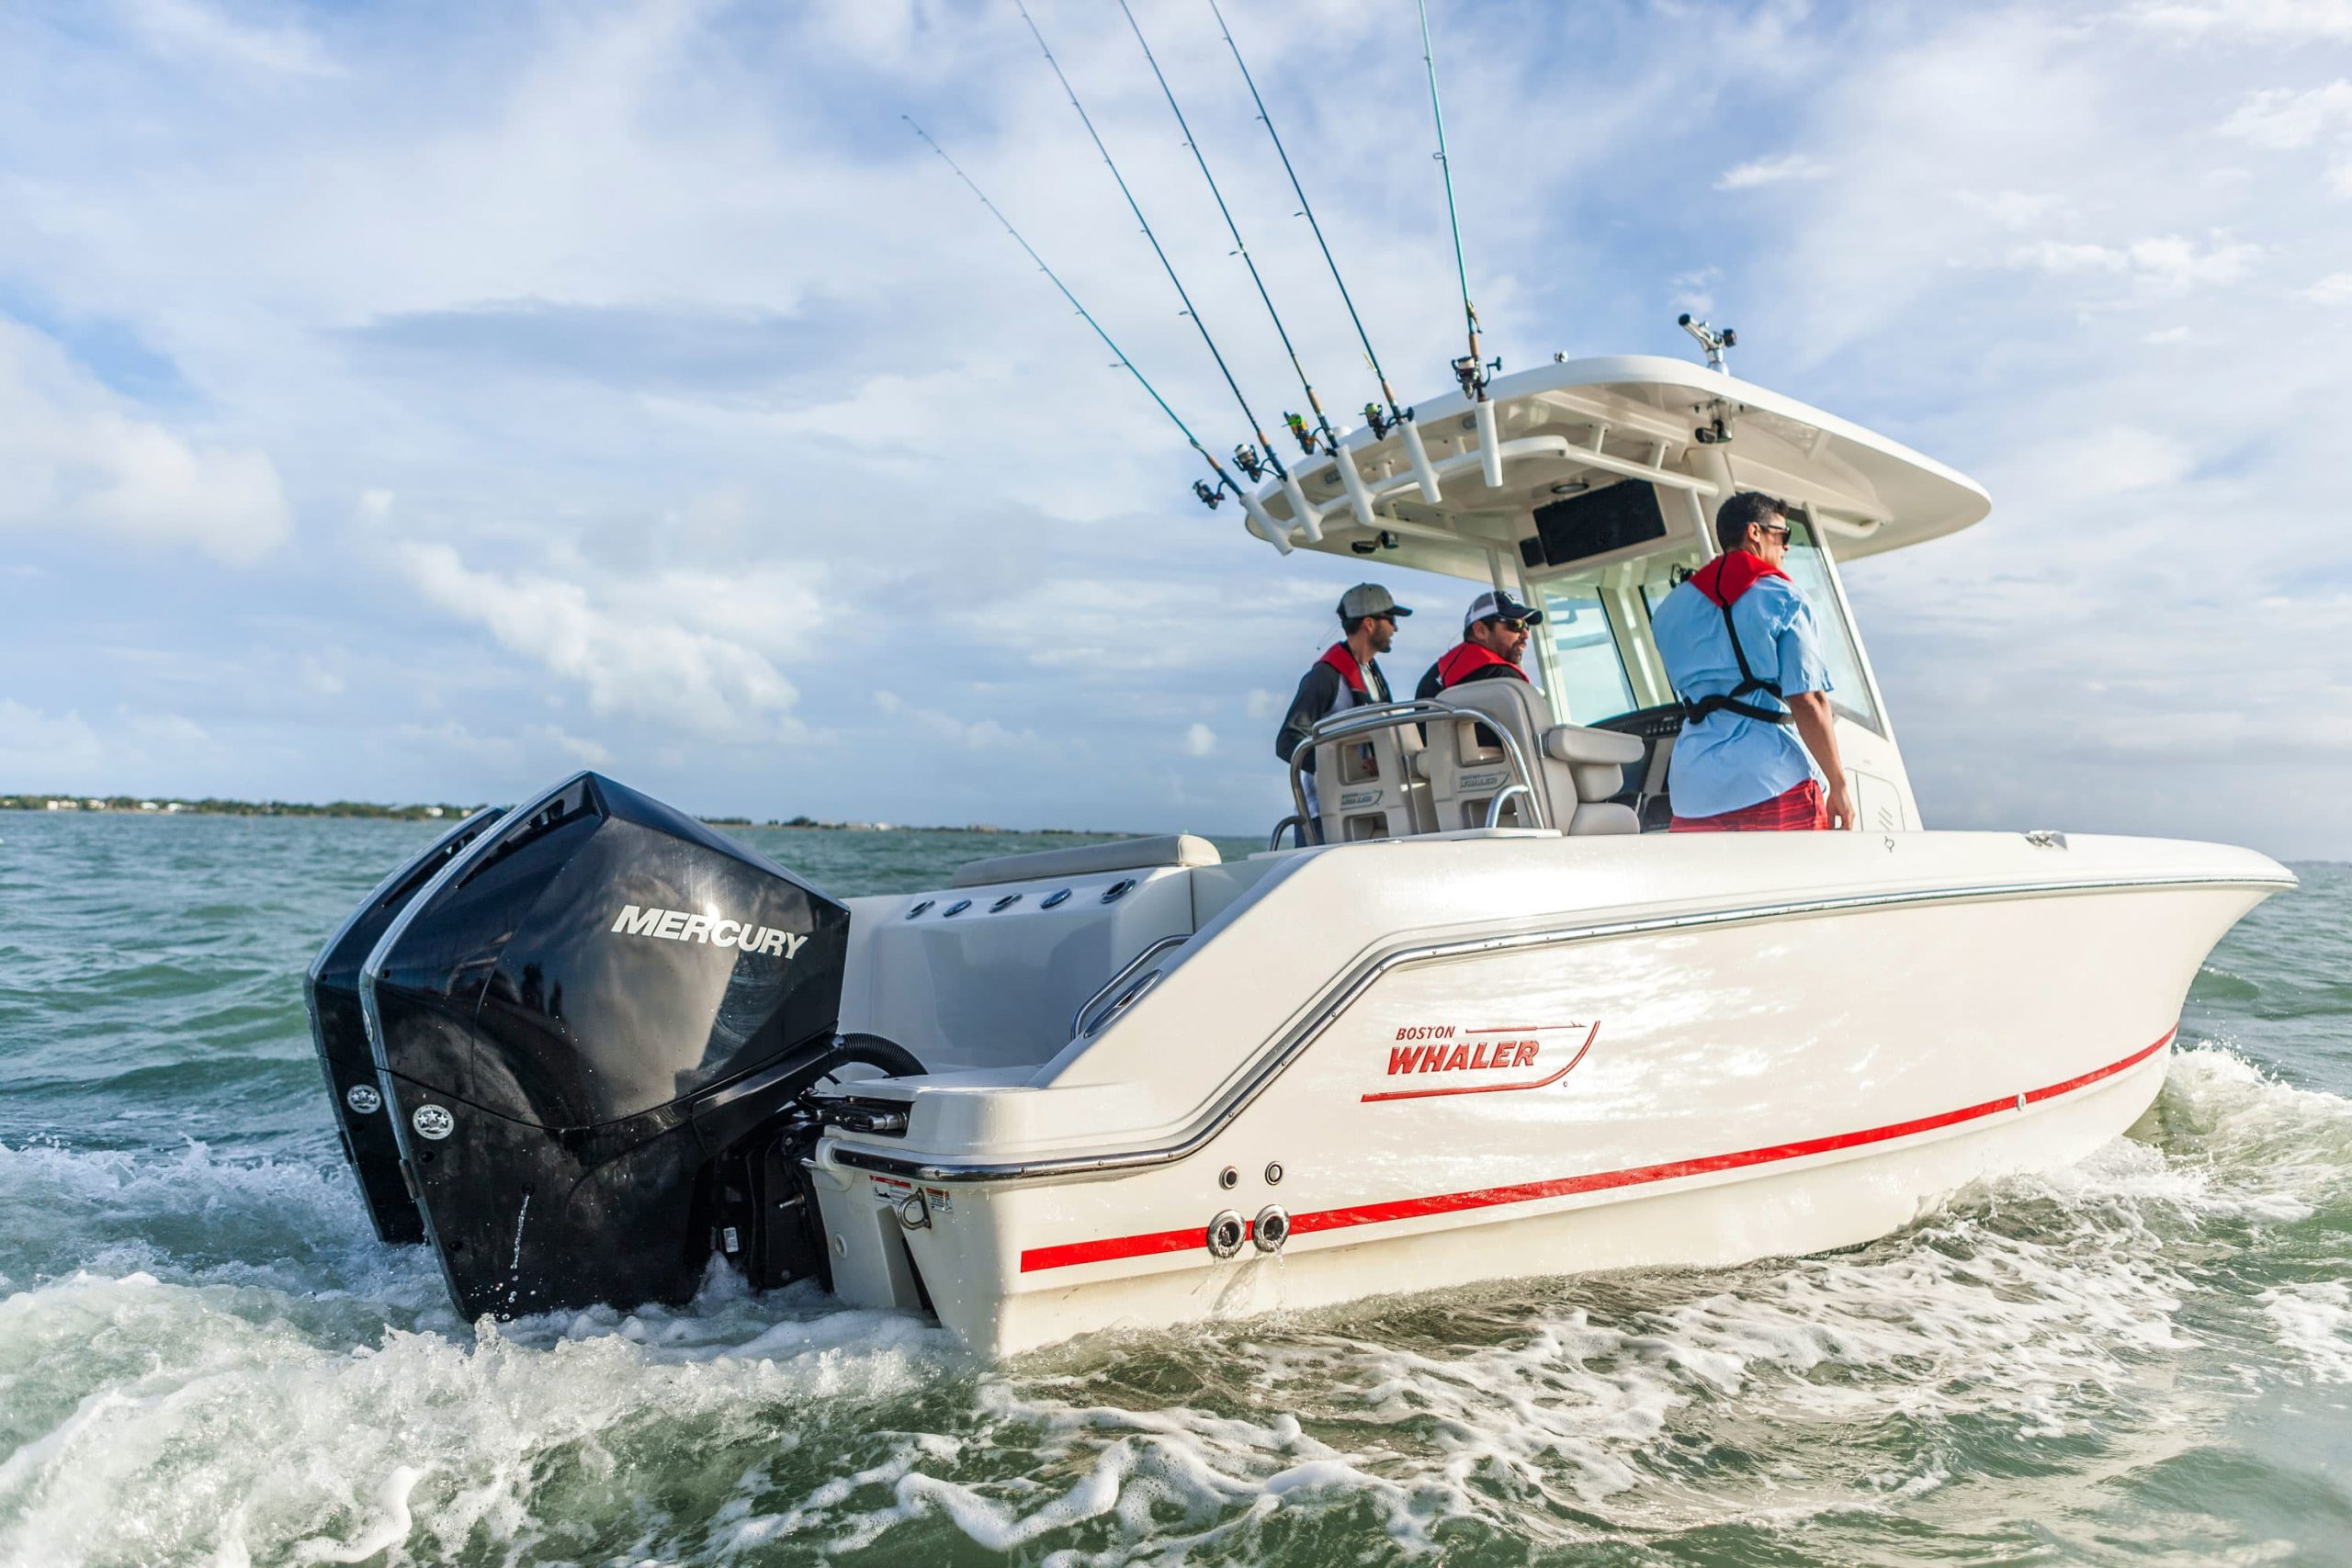 Boat maker Brunswick seeing big demand as buyers become more diverse, CEO says